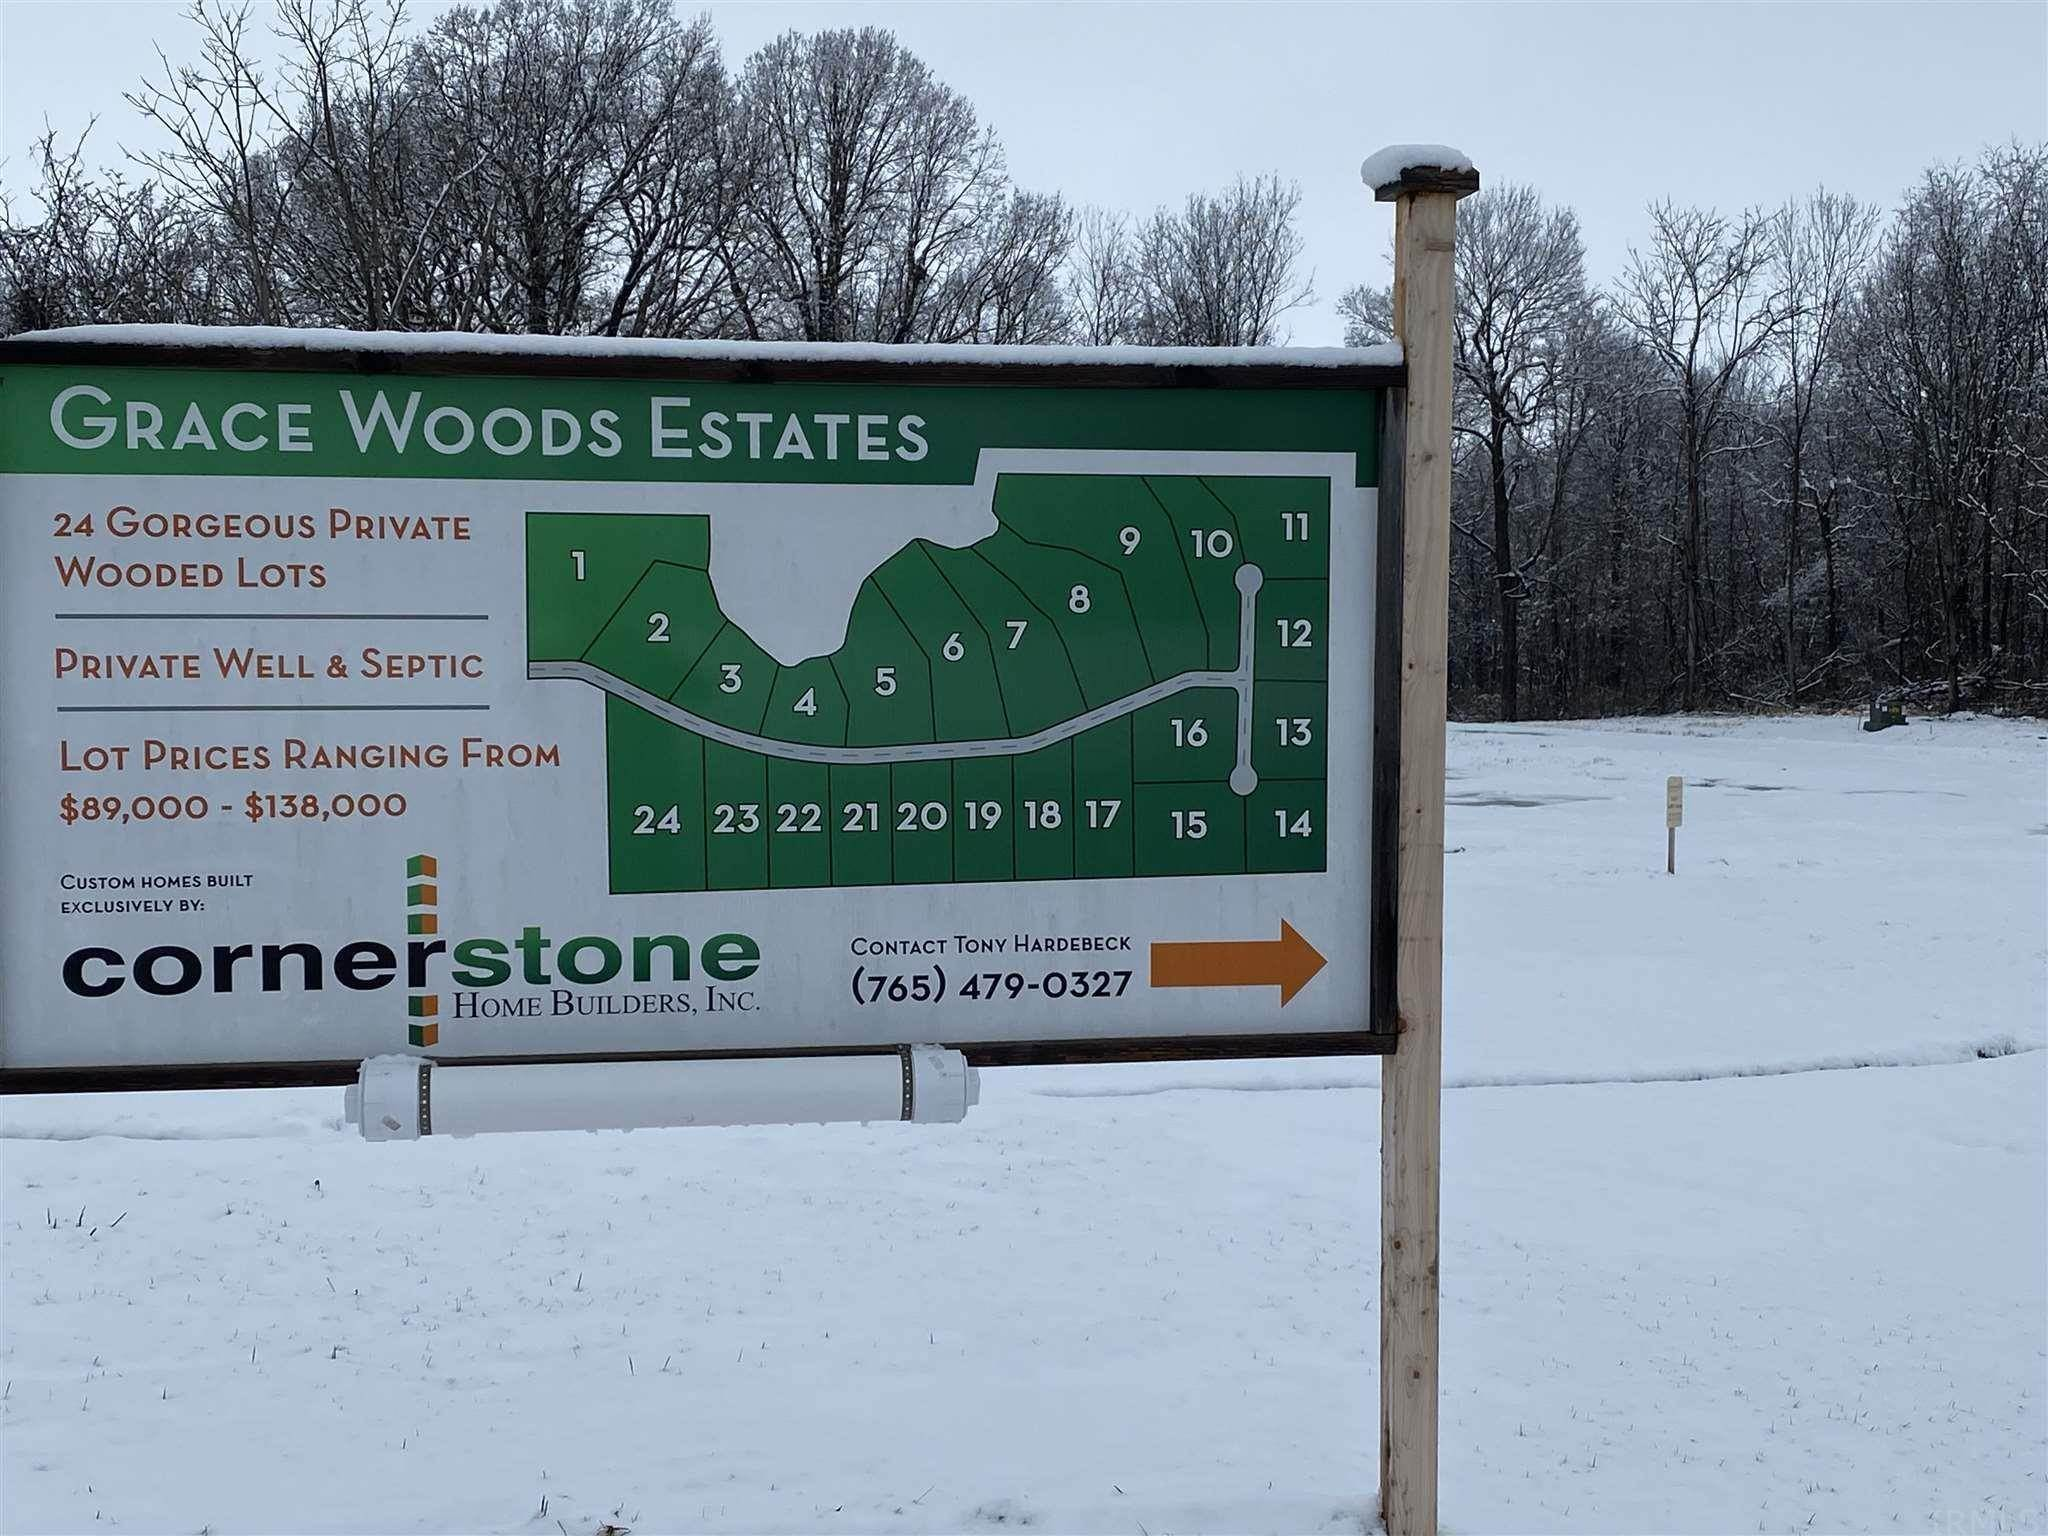 Residential Lots & Land for Sale at 9272 Herring Lane Battle Ground, Indiana 47920 United States